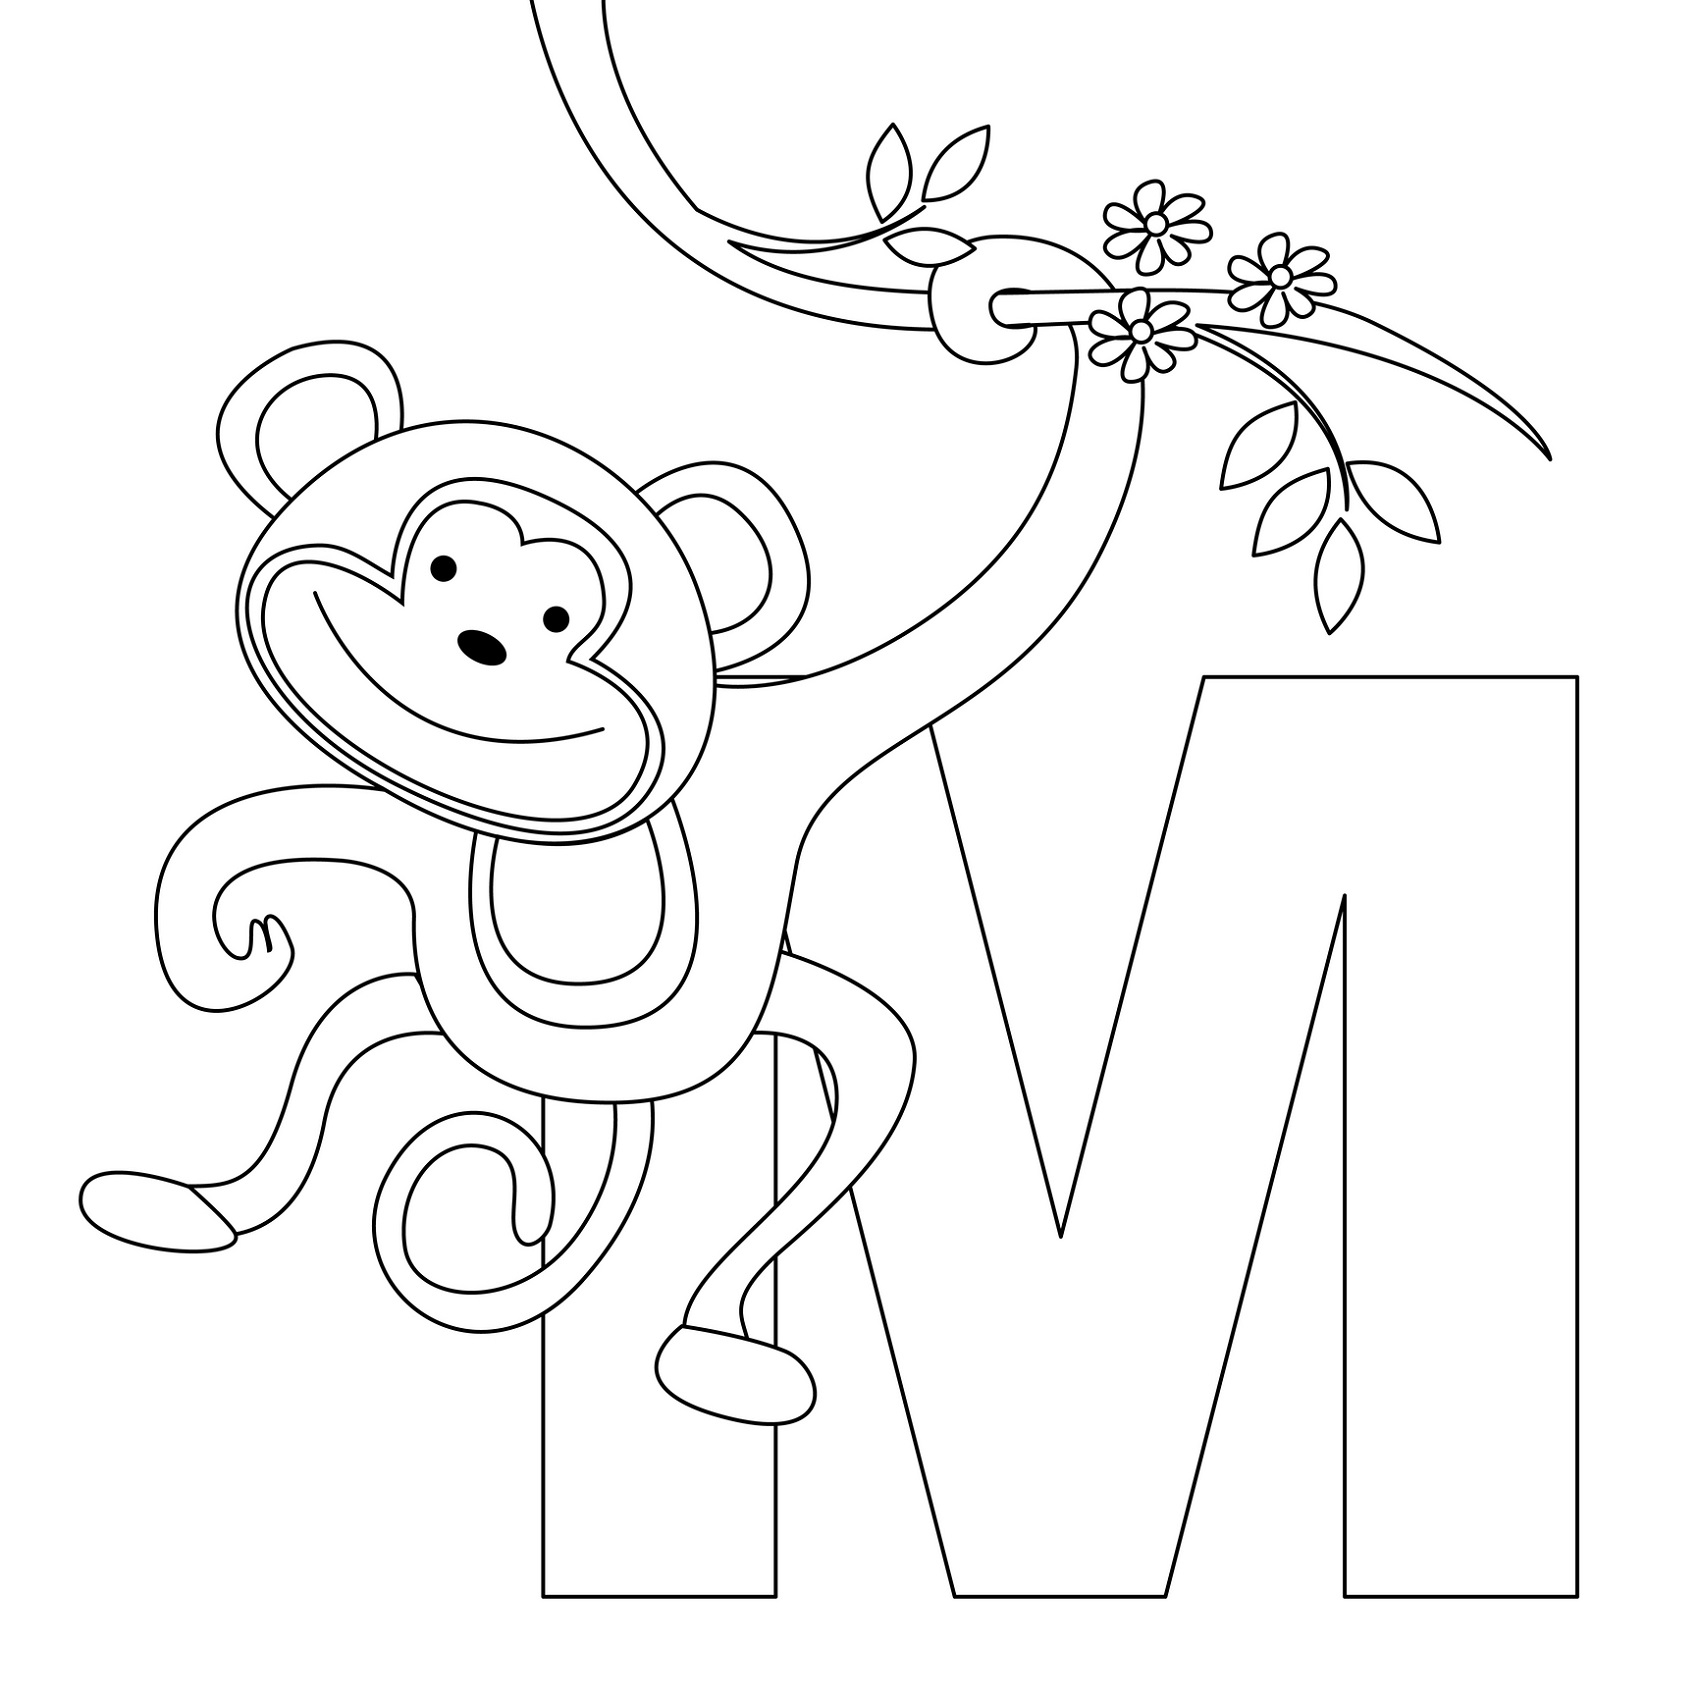 Alphabet Coloring Pages Toddlers